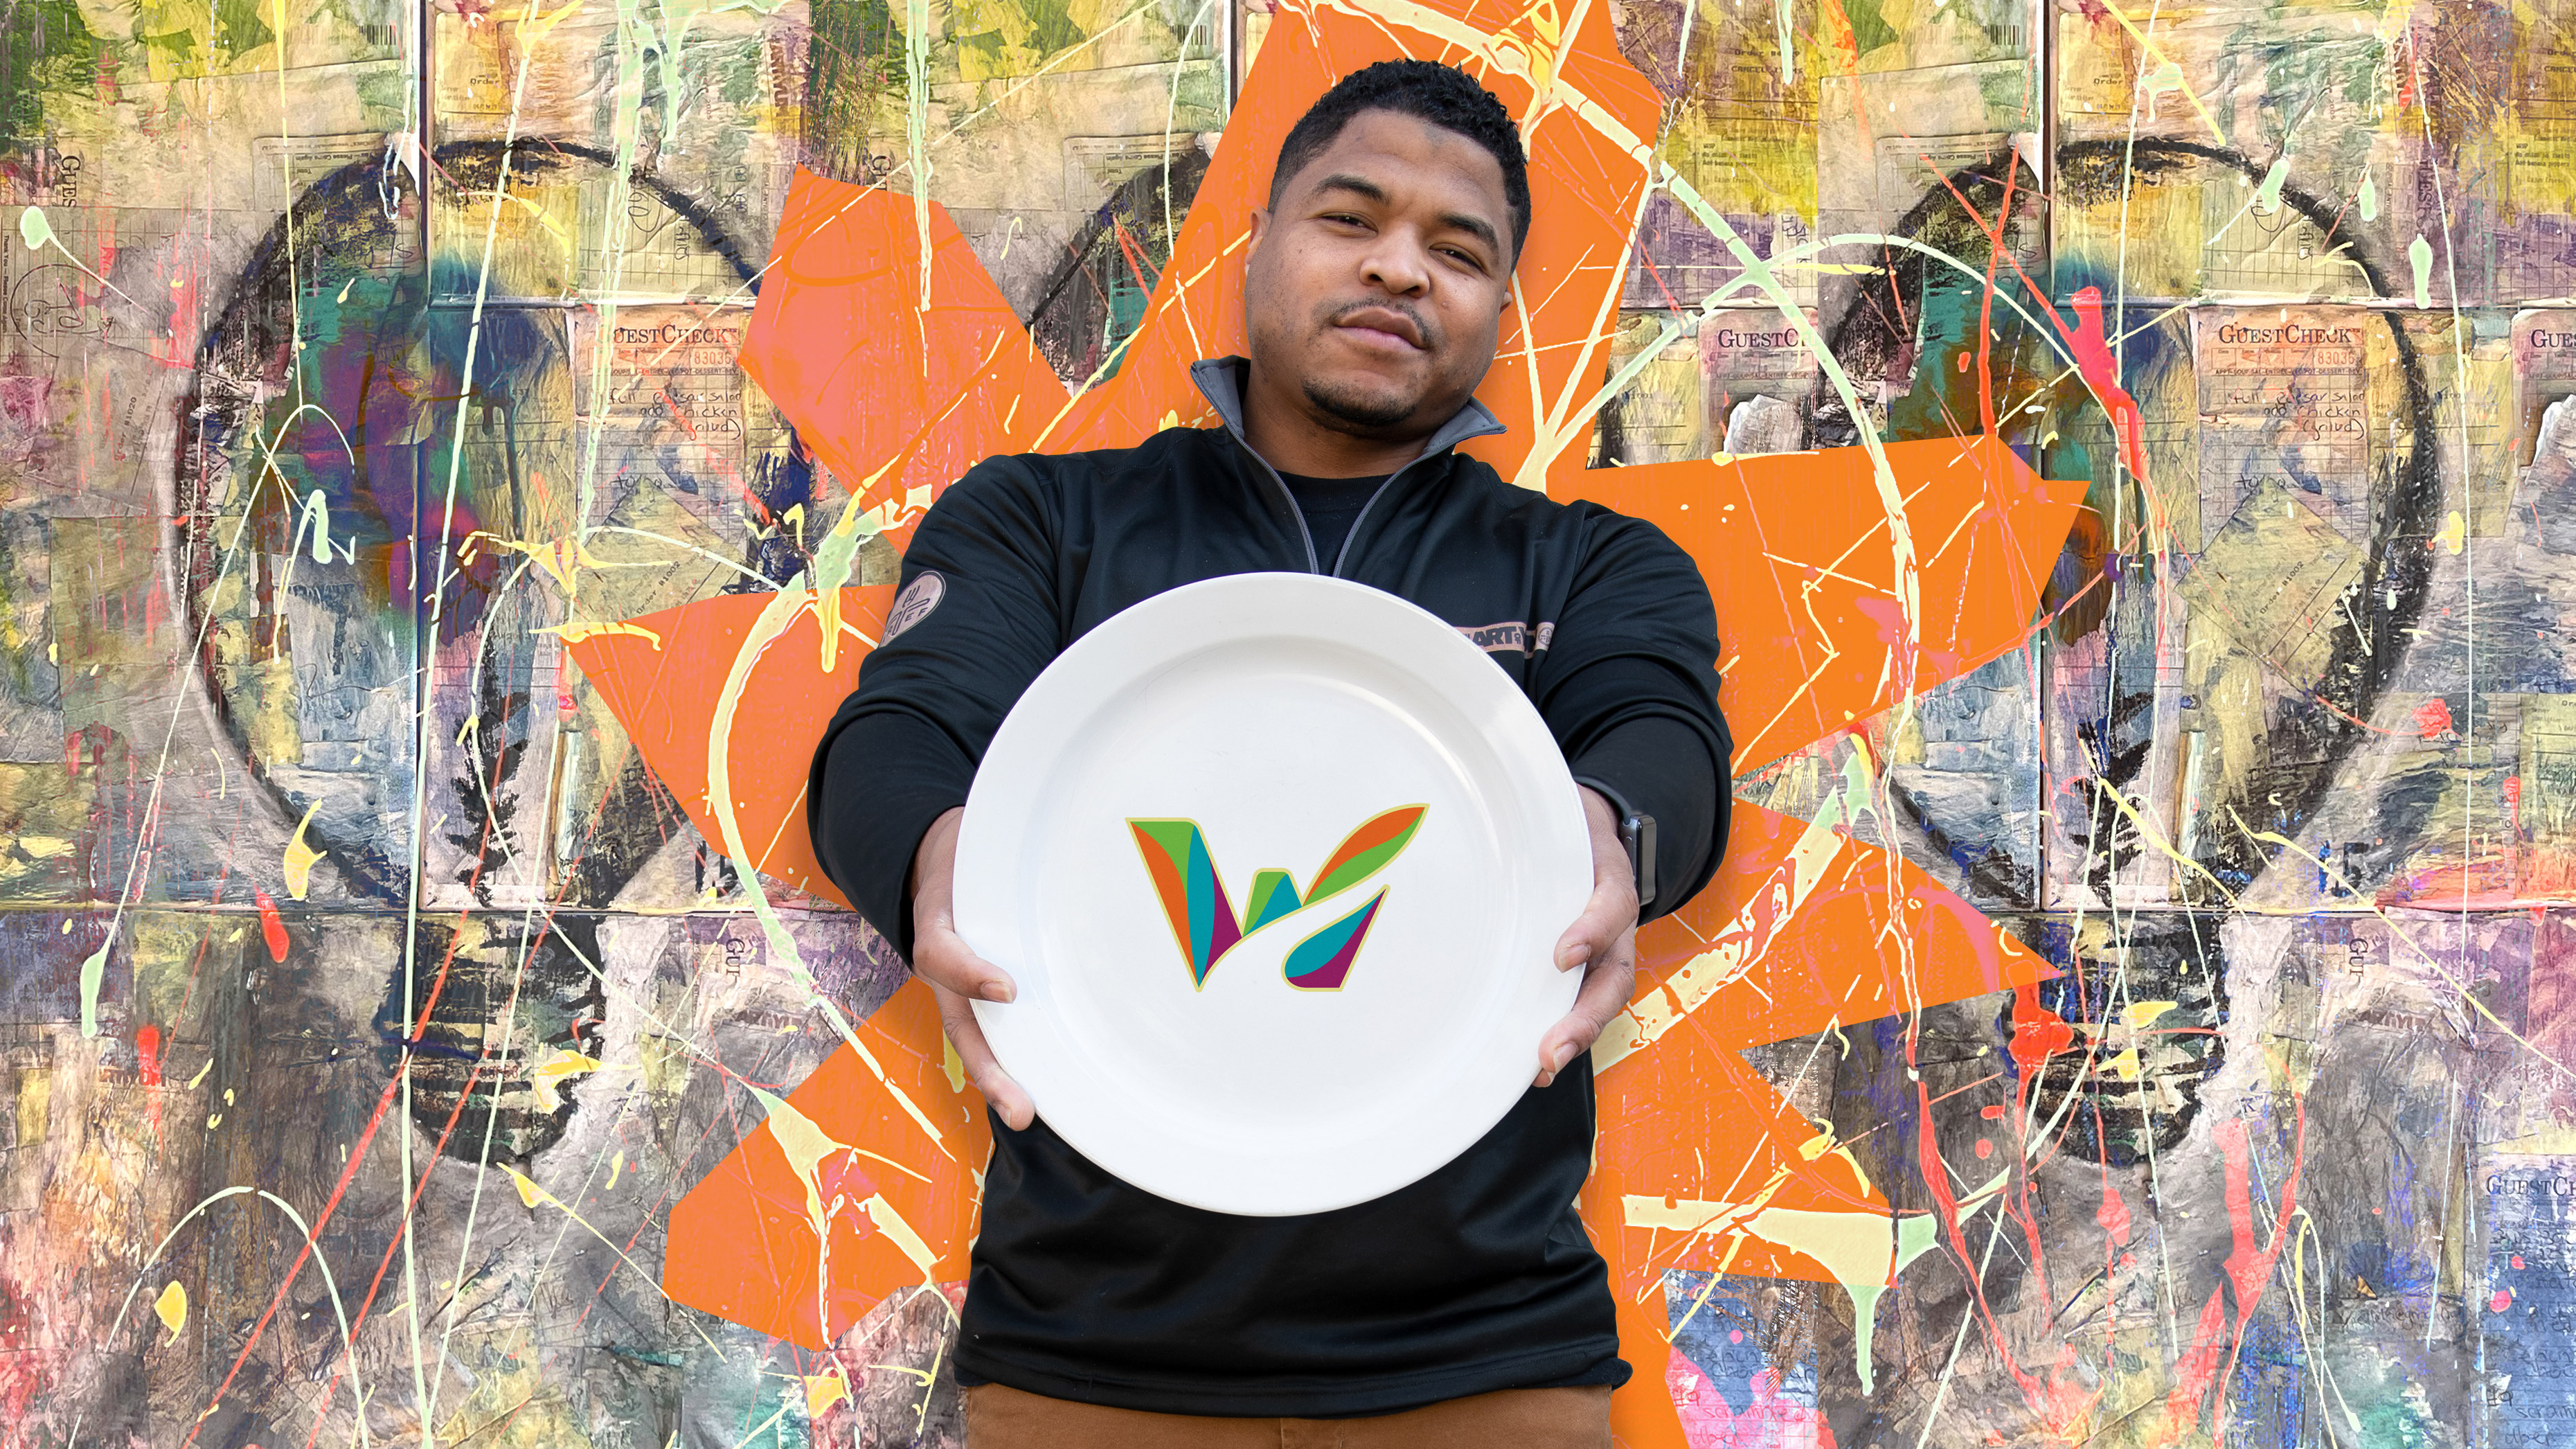 The Art Of Yum celebrity chef Michone Arrington holding a plate with the Waterbury logo on it